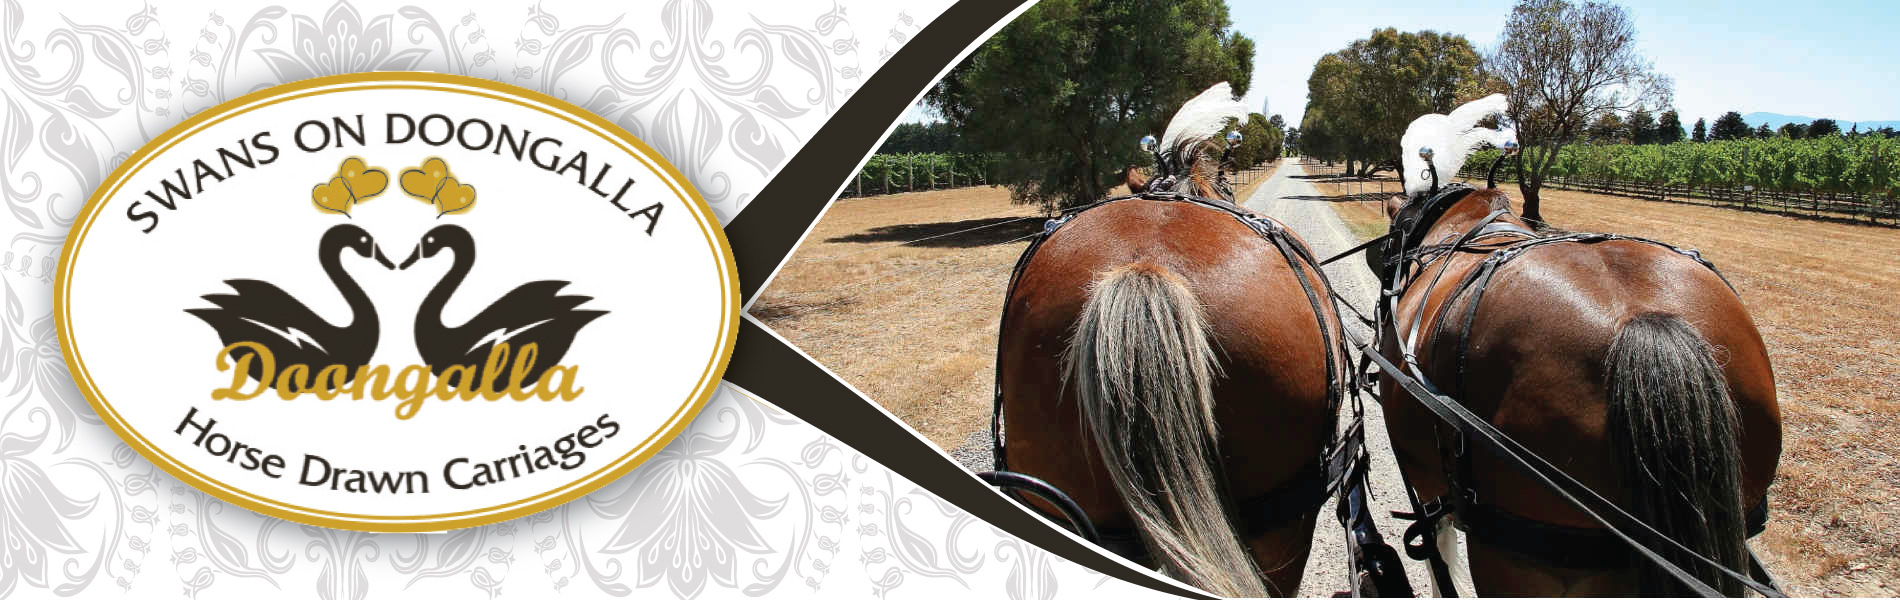 Horse Drawn Carriage Winery Tours